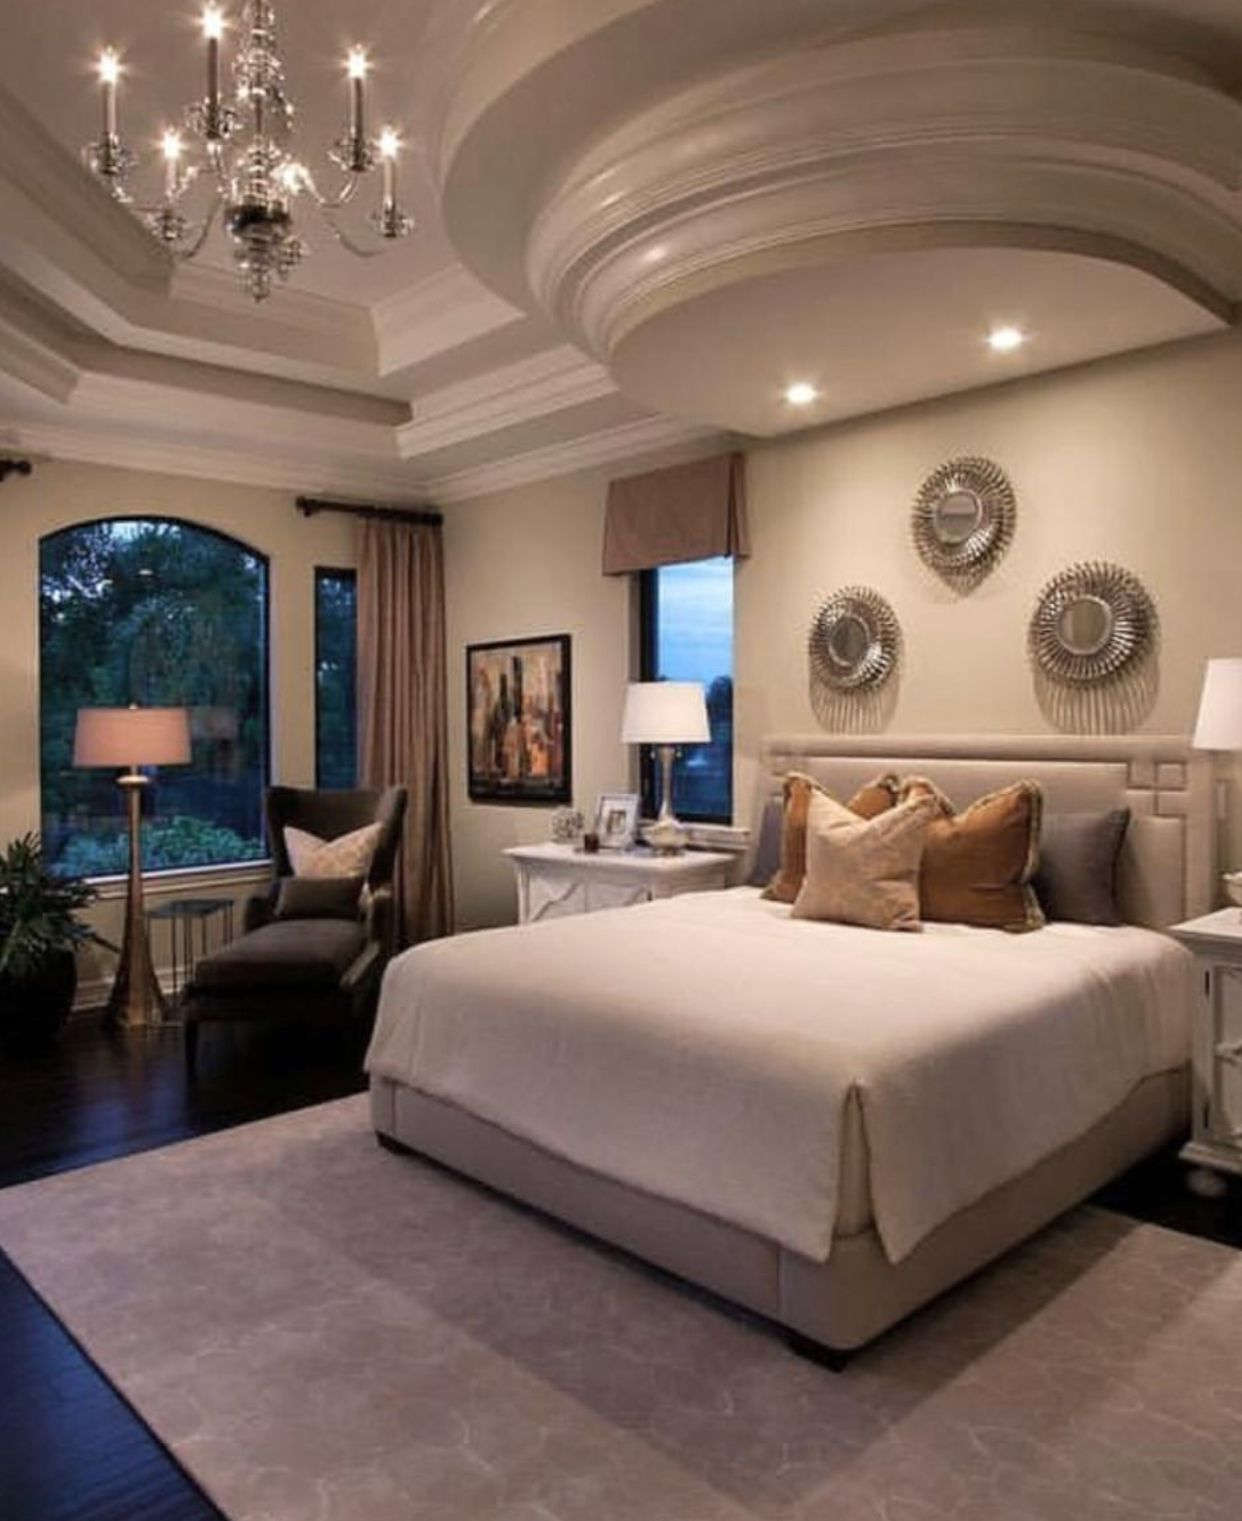 50 Master Bedroom Ideas That Go Beyond The Basics: Pin By John Stephens On My Bachelor Estate!!!